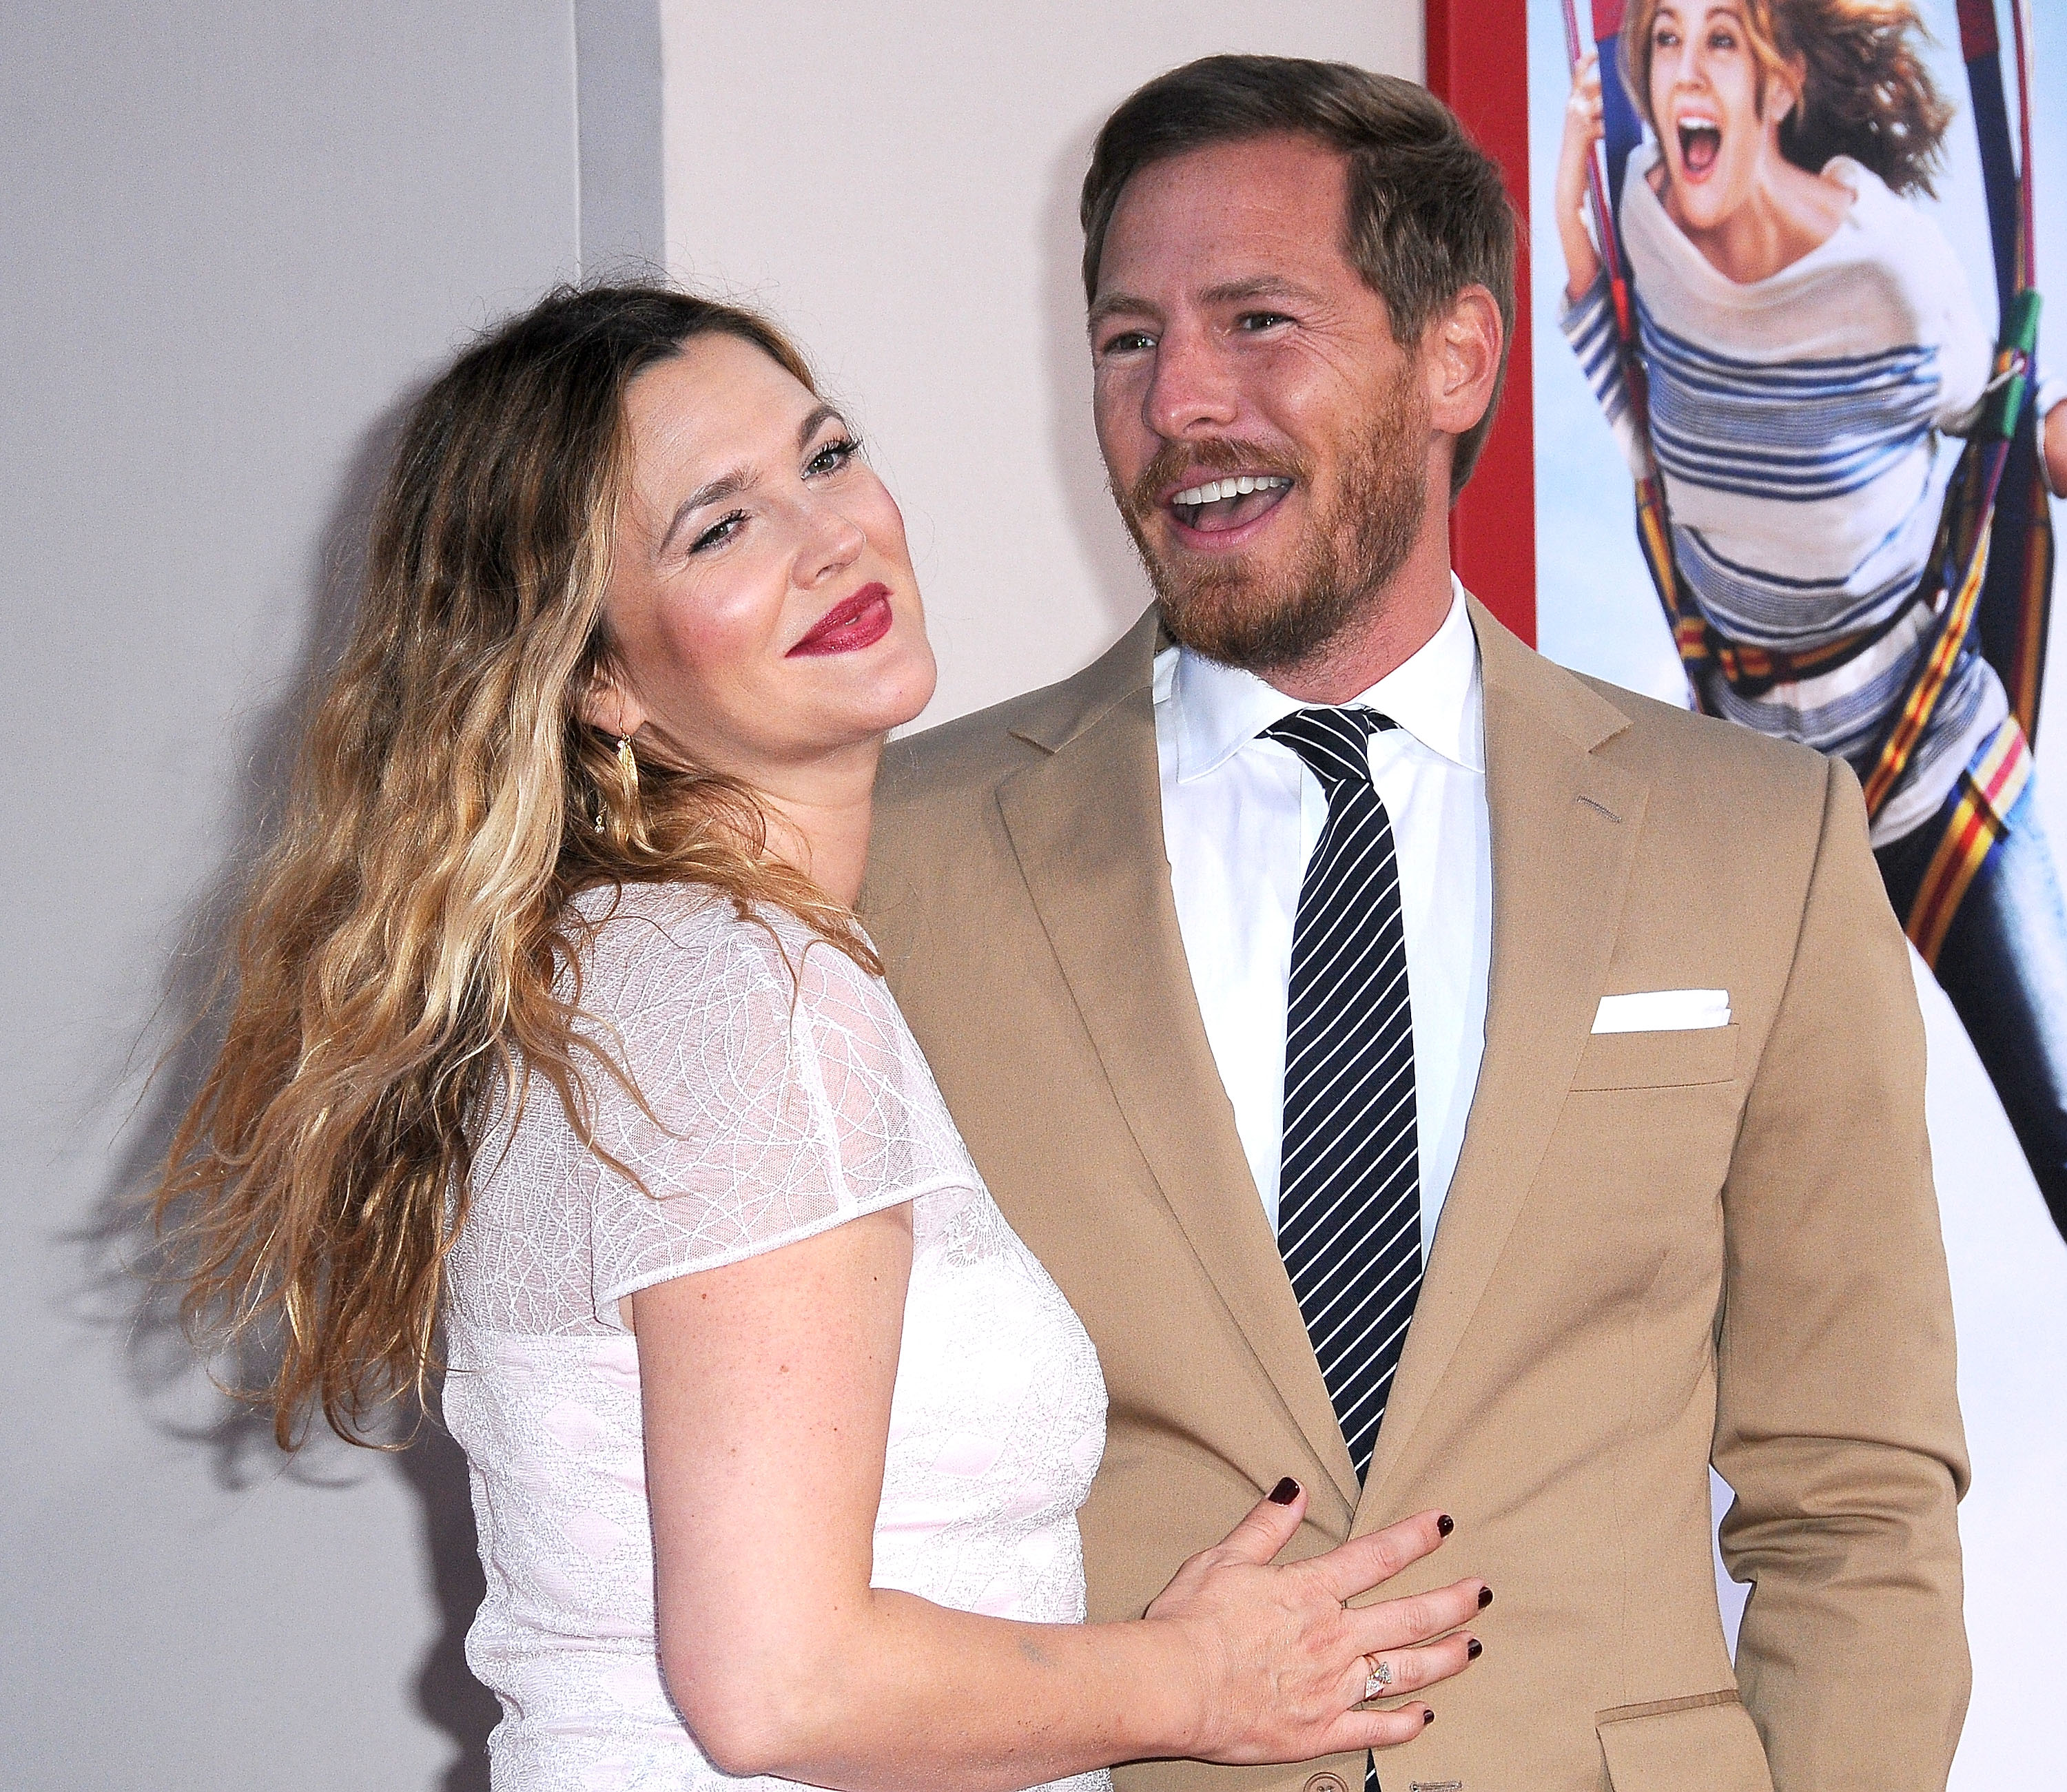 """Drew Barrymore and Will Kopelman at the LA premiere of """"Blended"""", 2014 